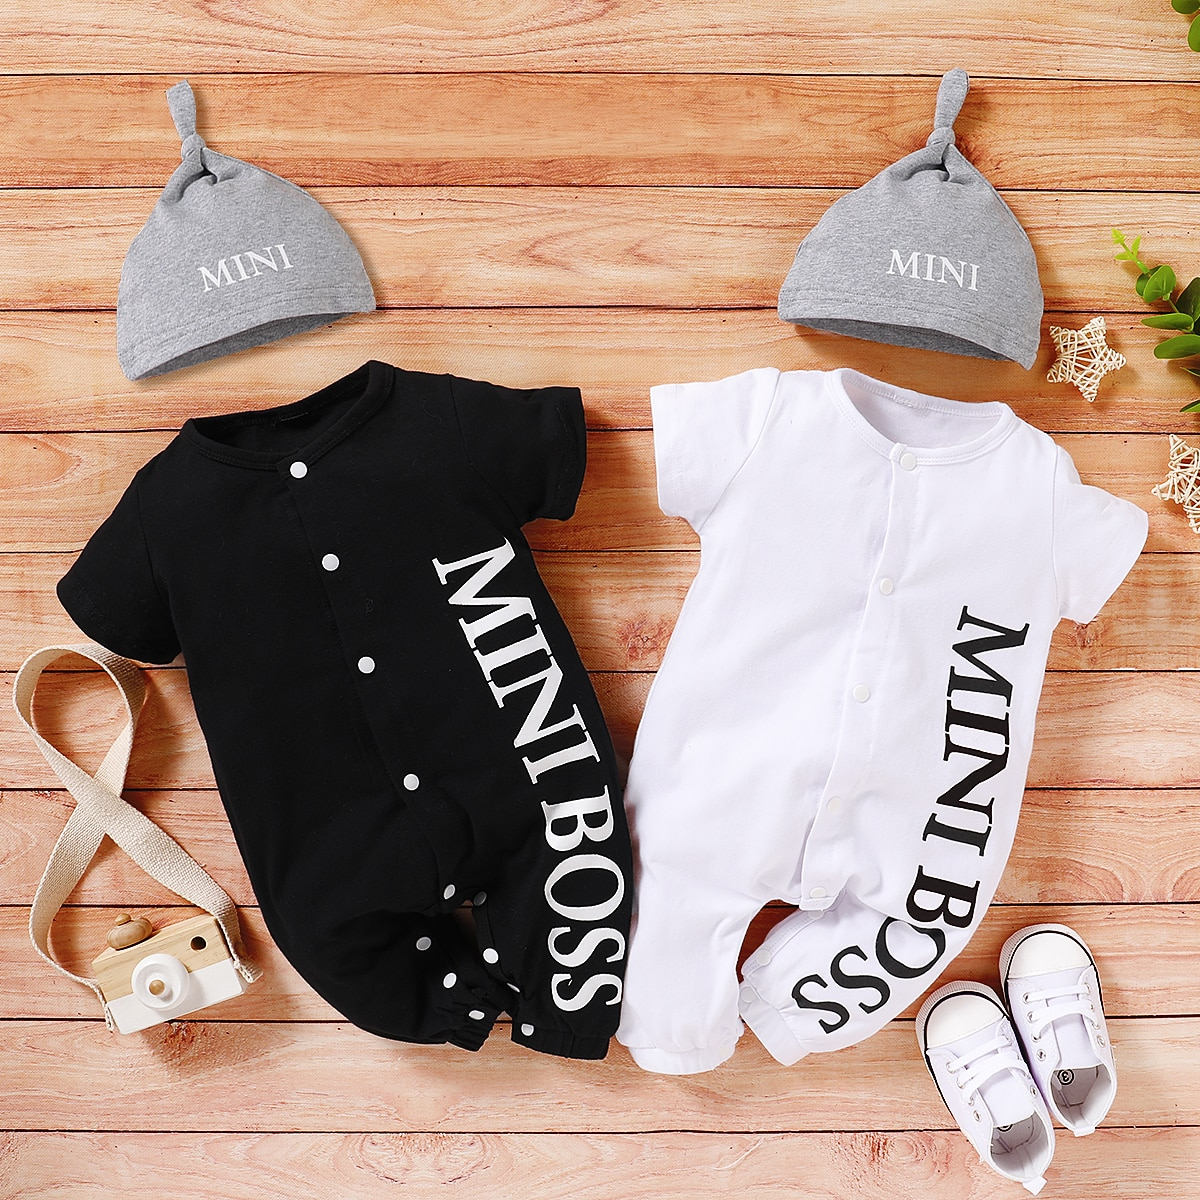 PatPat Hot Sales 2021 Spring and Summer Baby Boy MINI BOSS Baby Rompers with Hat Short and Long Sleeve Baby's Clothing